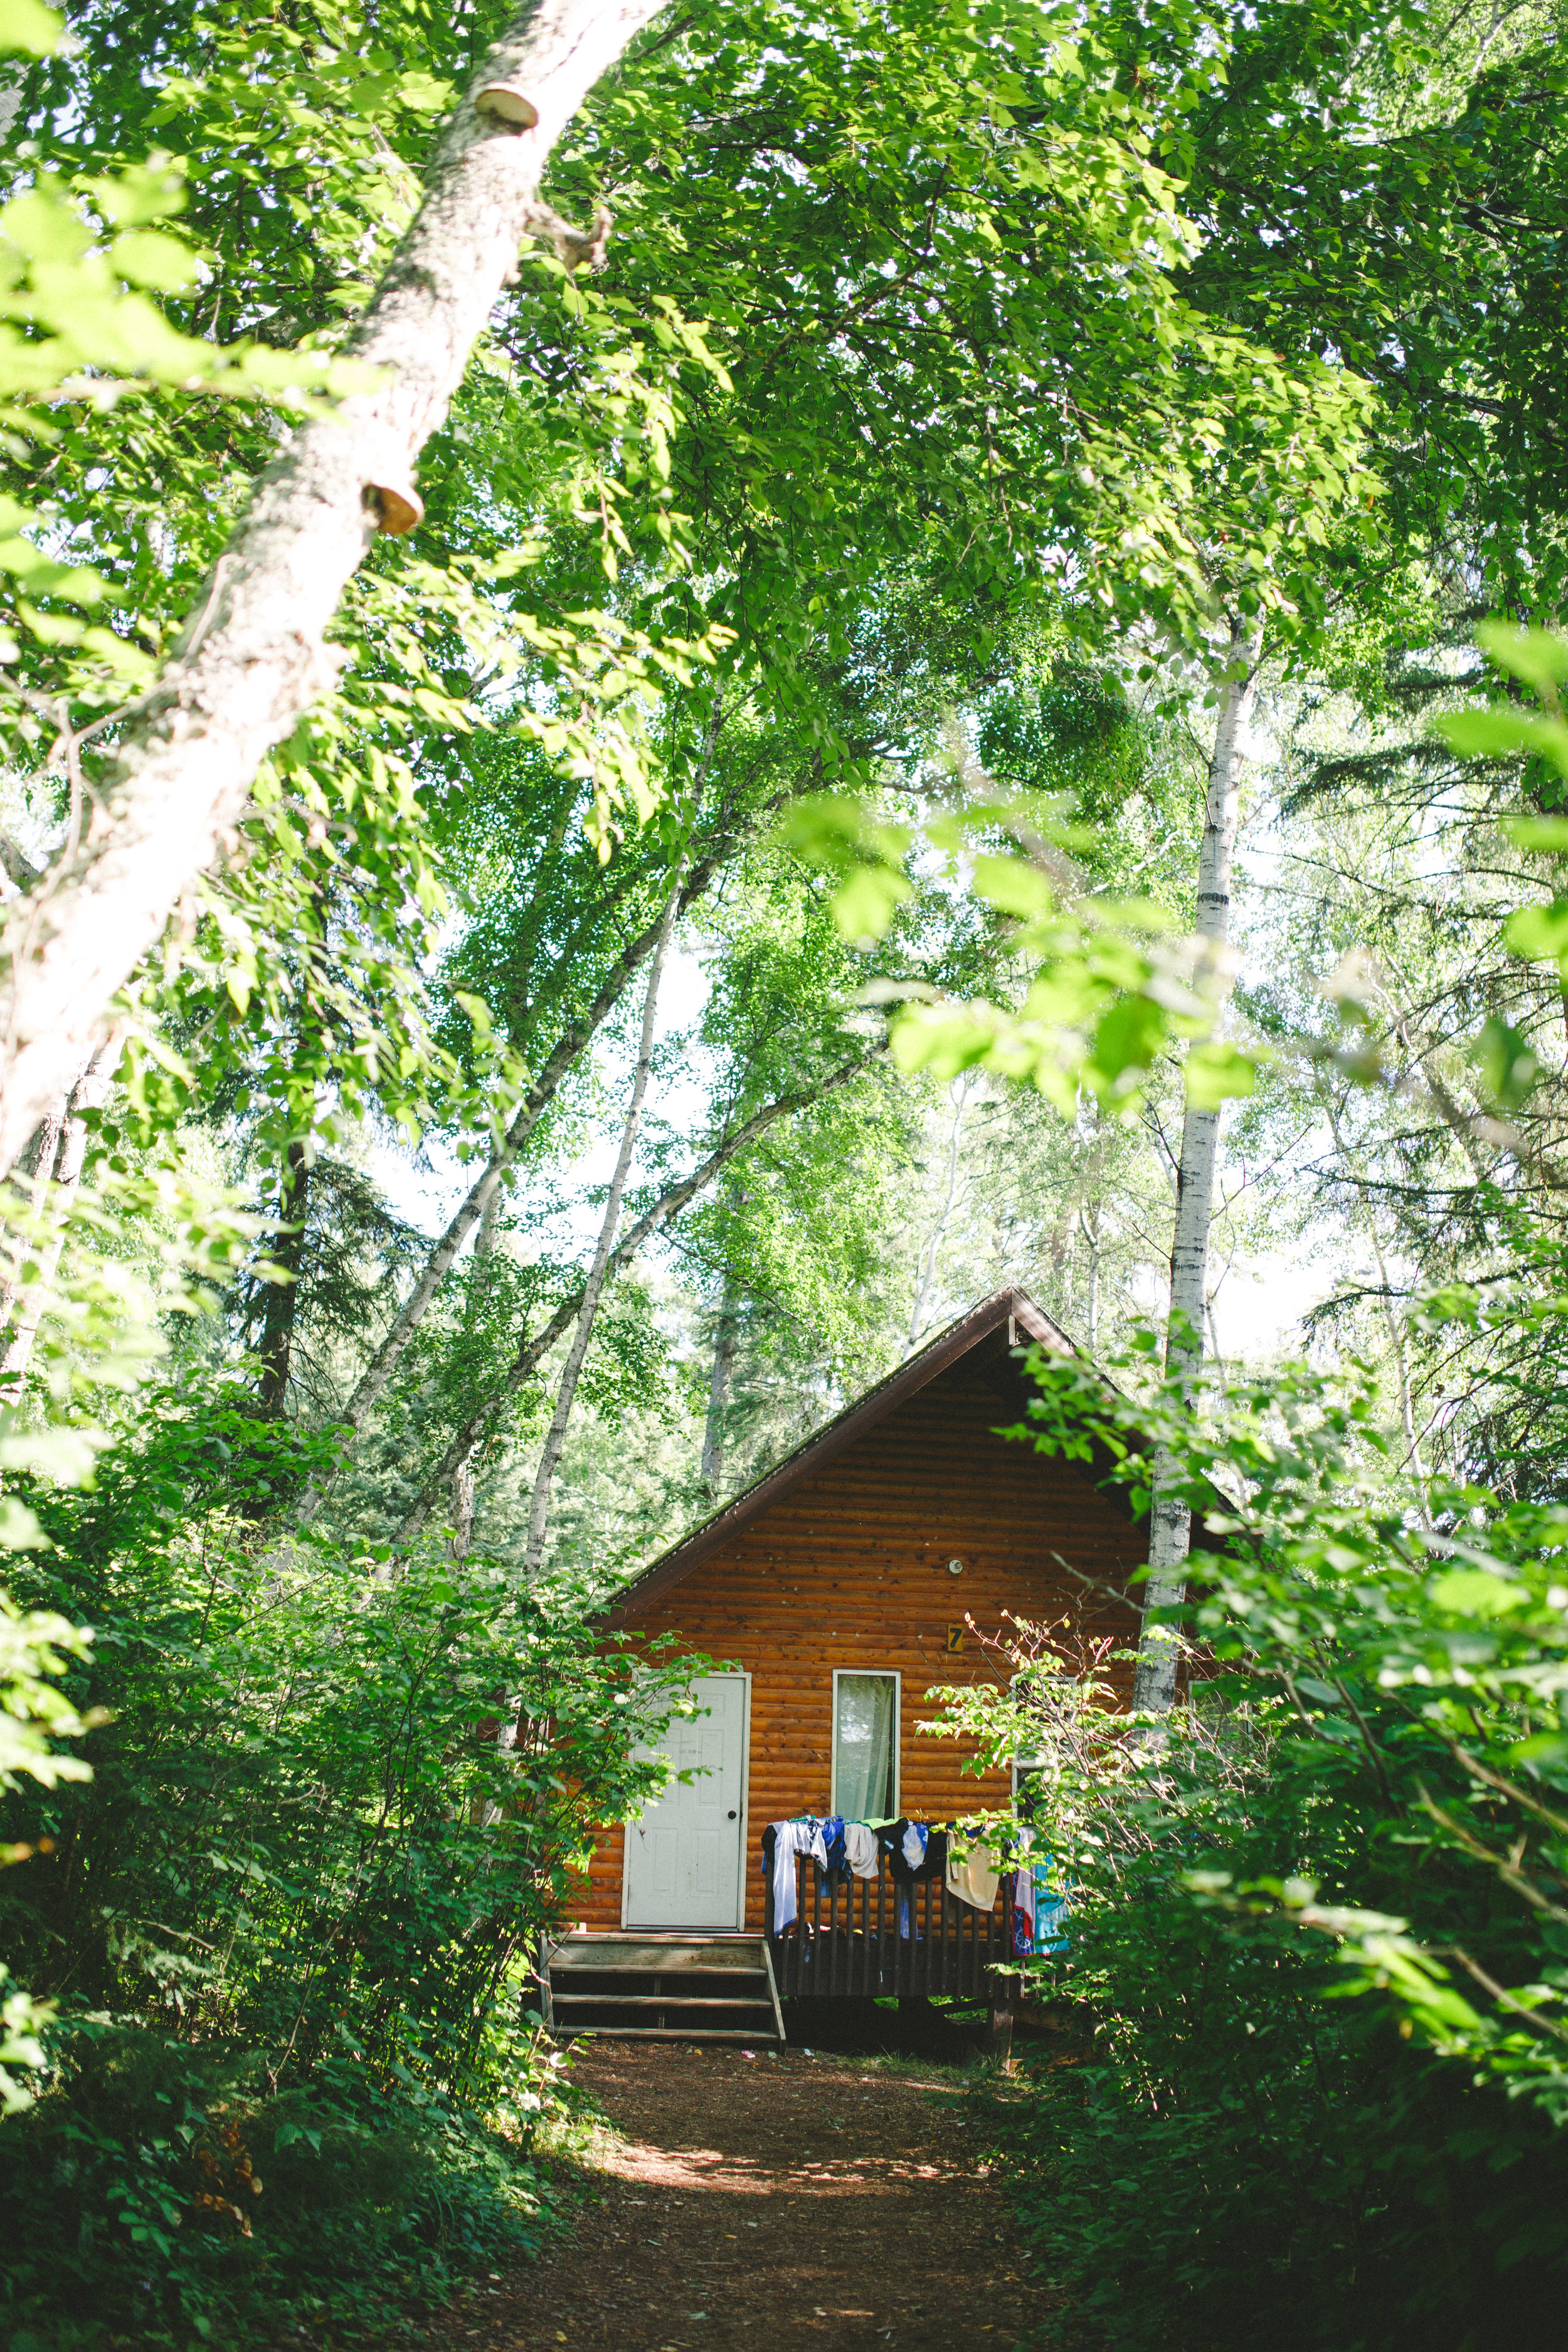 An example of one of our cabins hidden in the woods